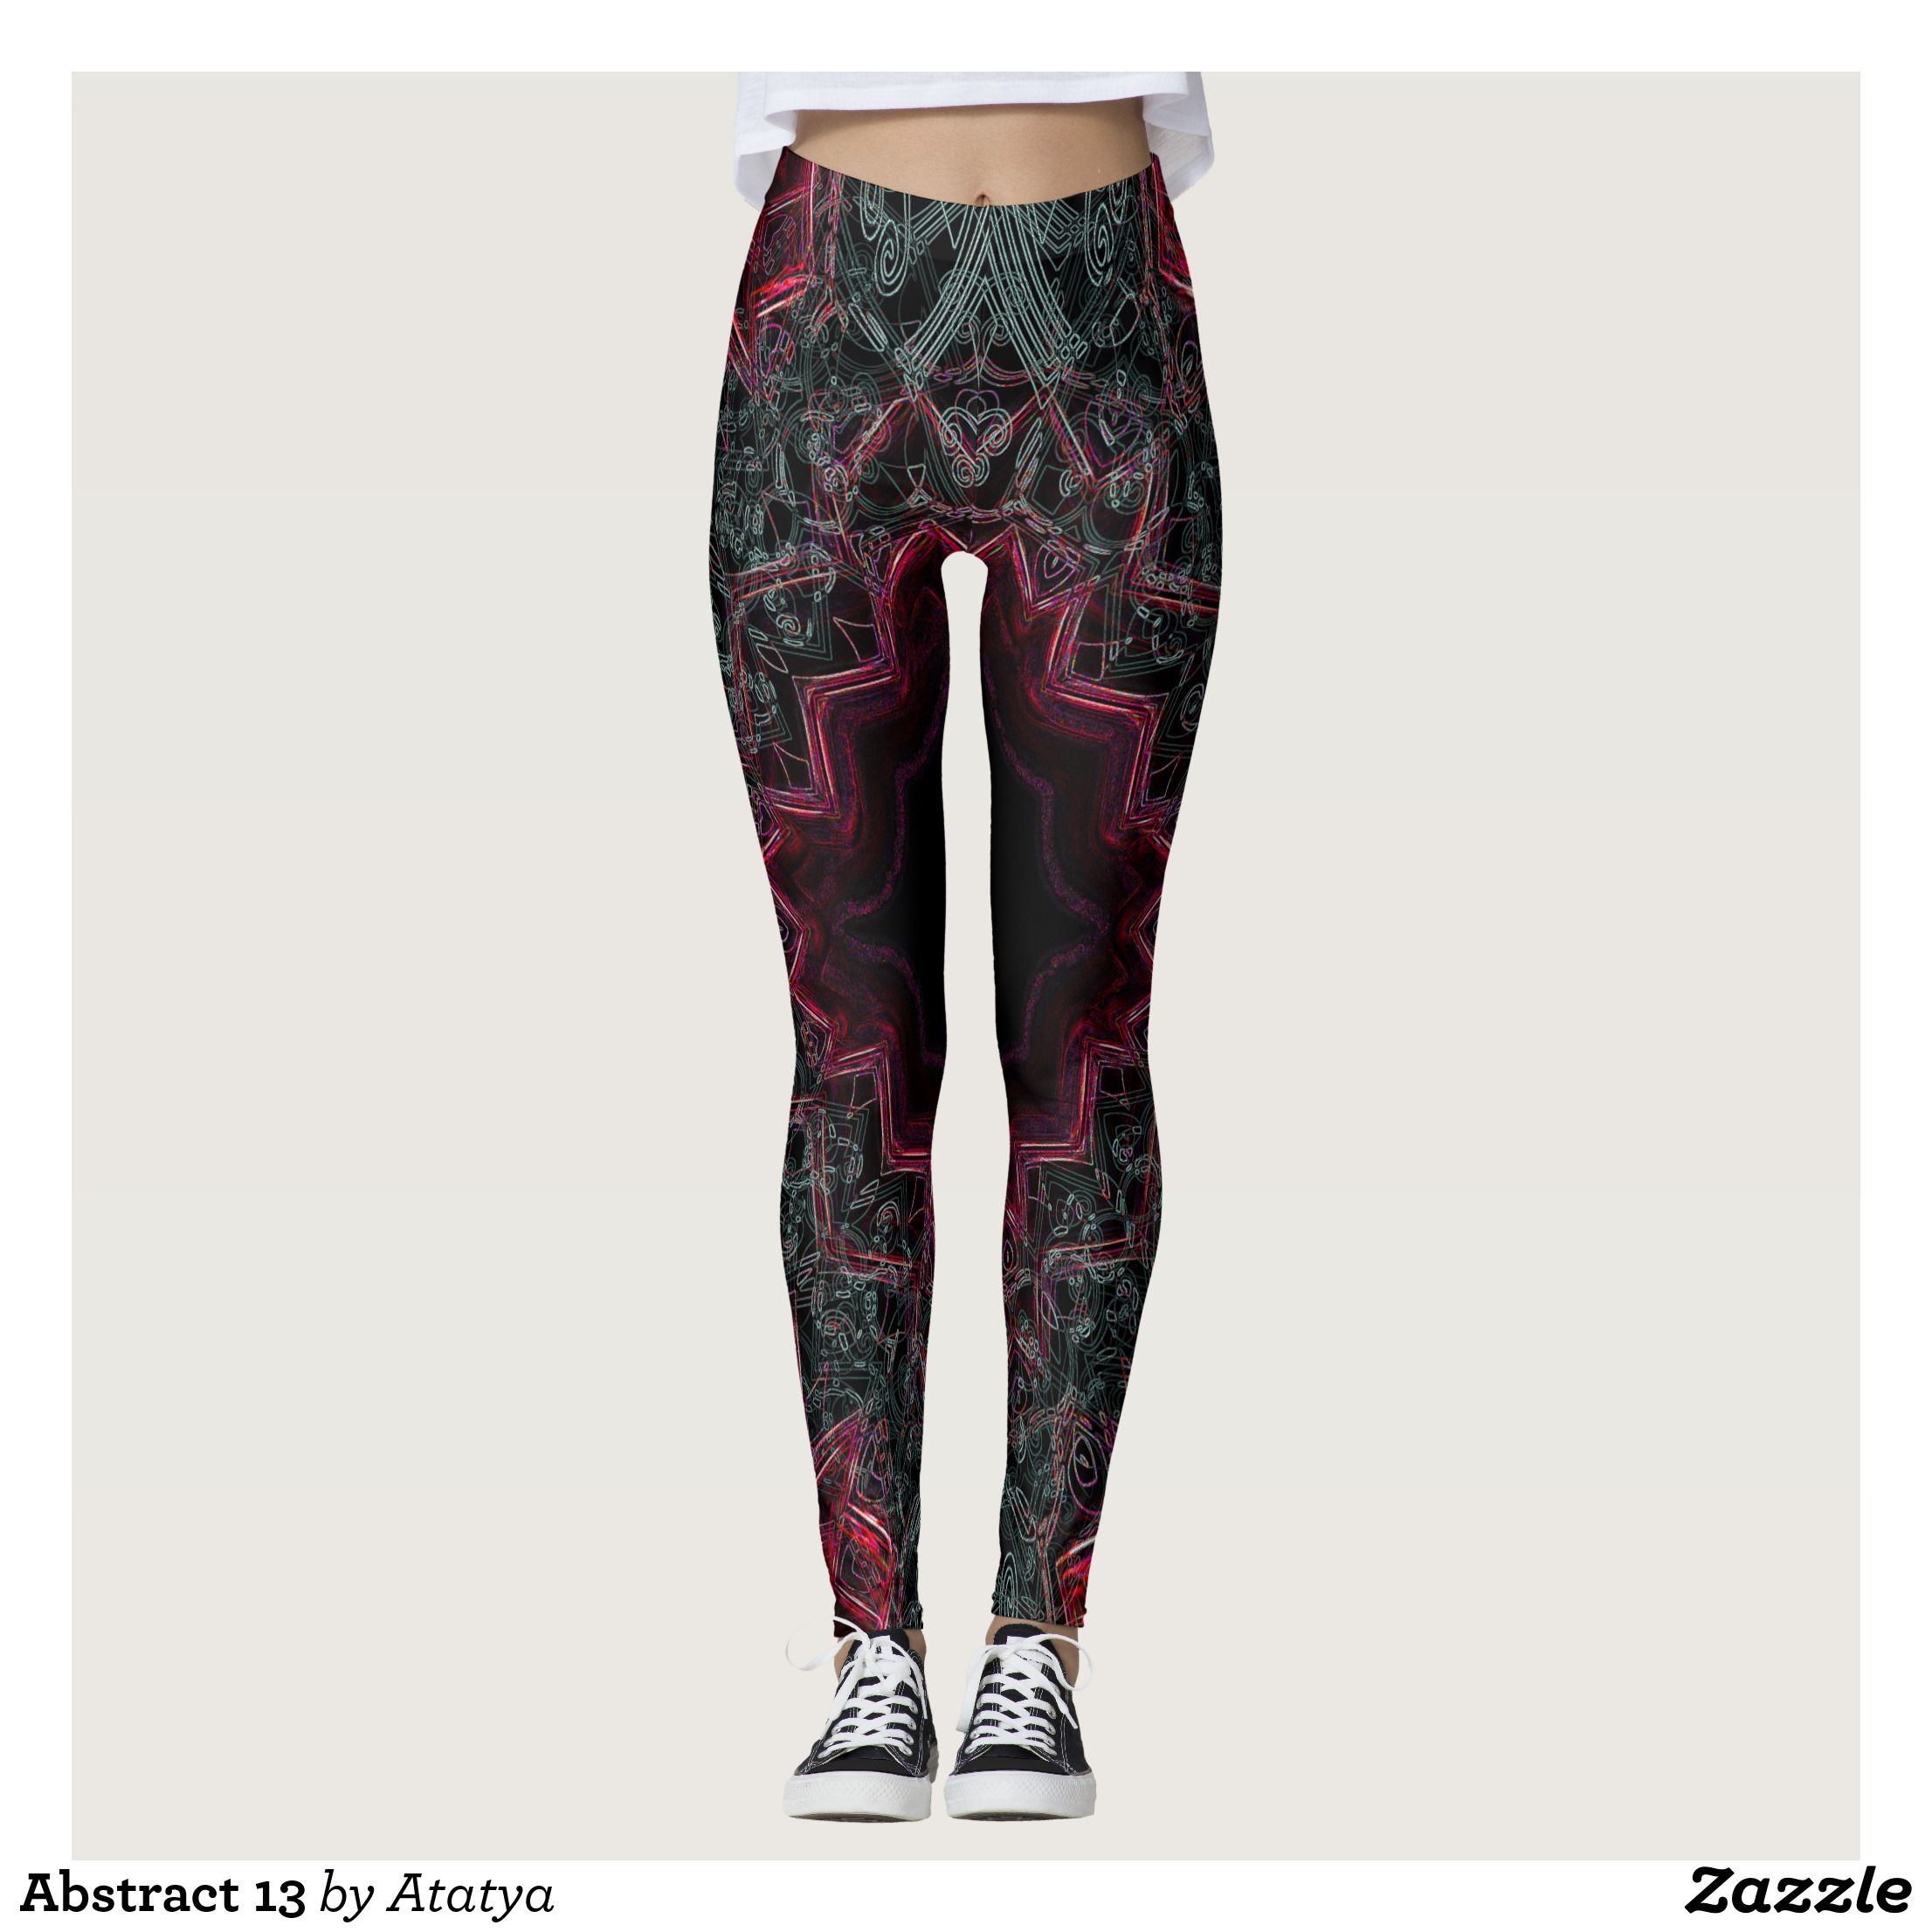 4376e09478cce Abstract 13 leggings : Beautiful #Yoga Pants - #Exercise Leggings and #Running  Tights - Health and Training Inspiration - Clothing for #Fitspiration and  ...